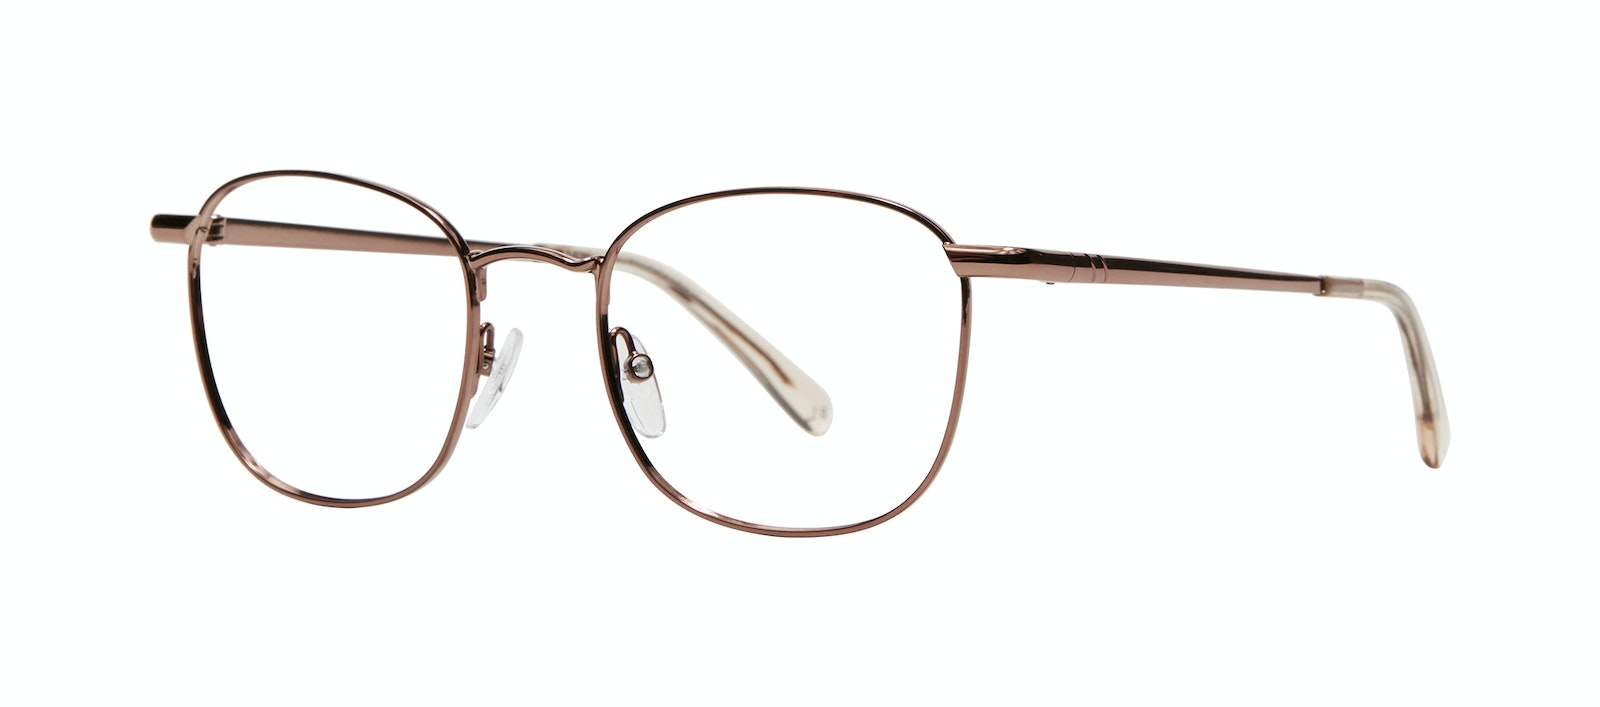 Affordable Fashion Glasses Square Eyeglasses Men Apex M Copper Tilt